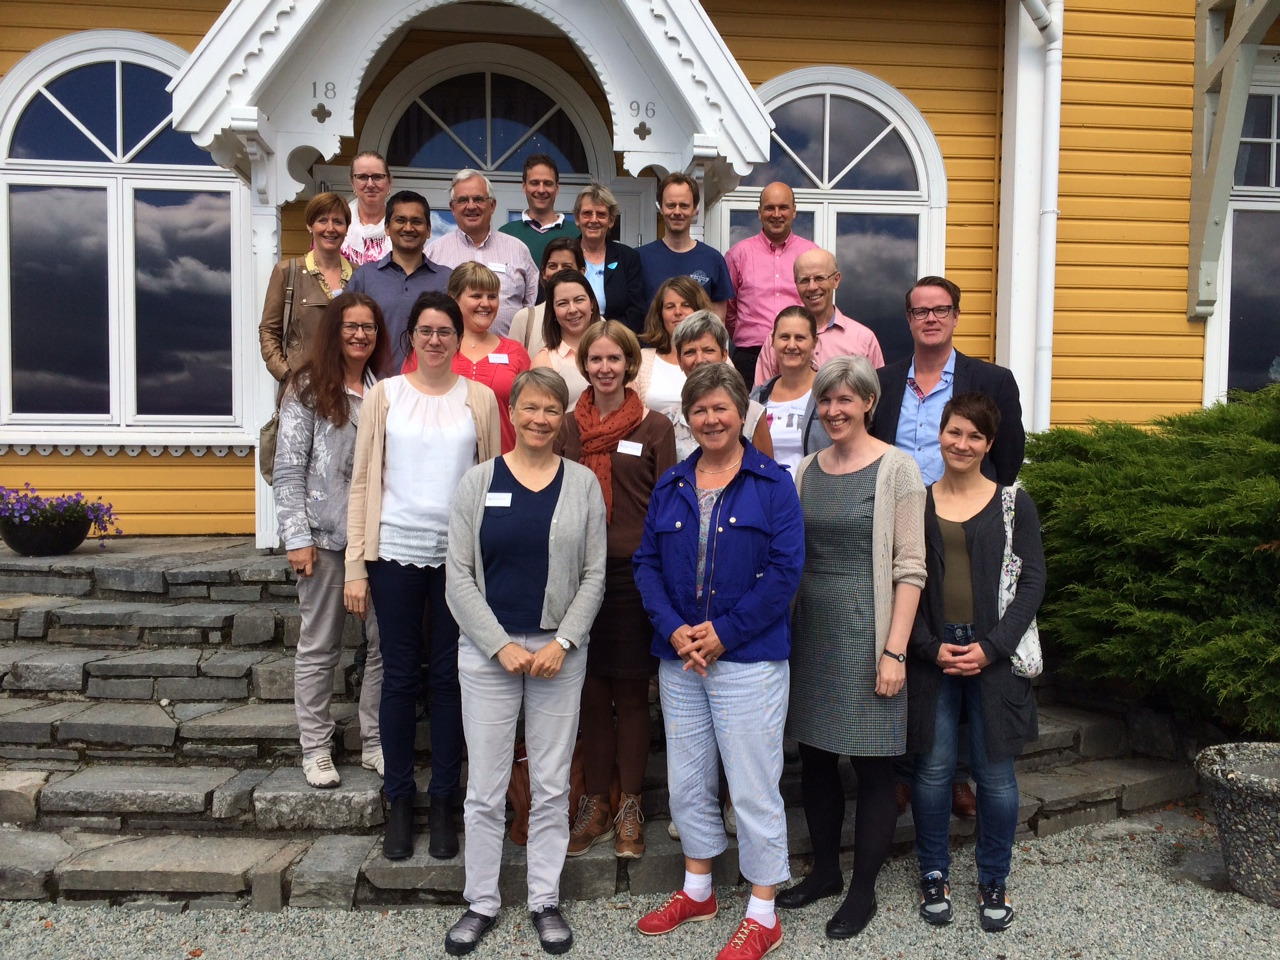 Participants in Solstrand, 2014 (photo: Siri Forsmo)